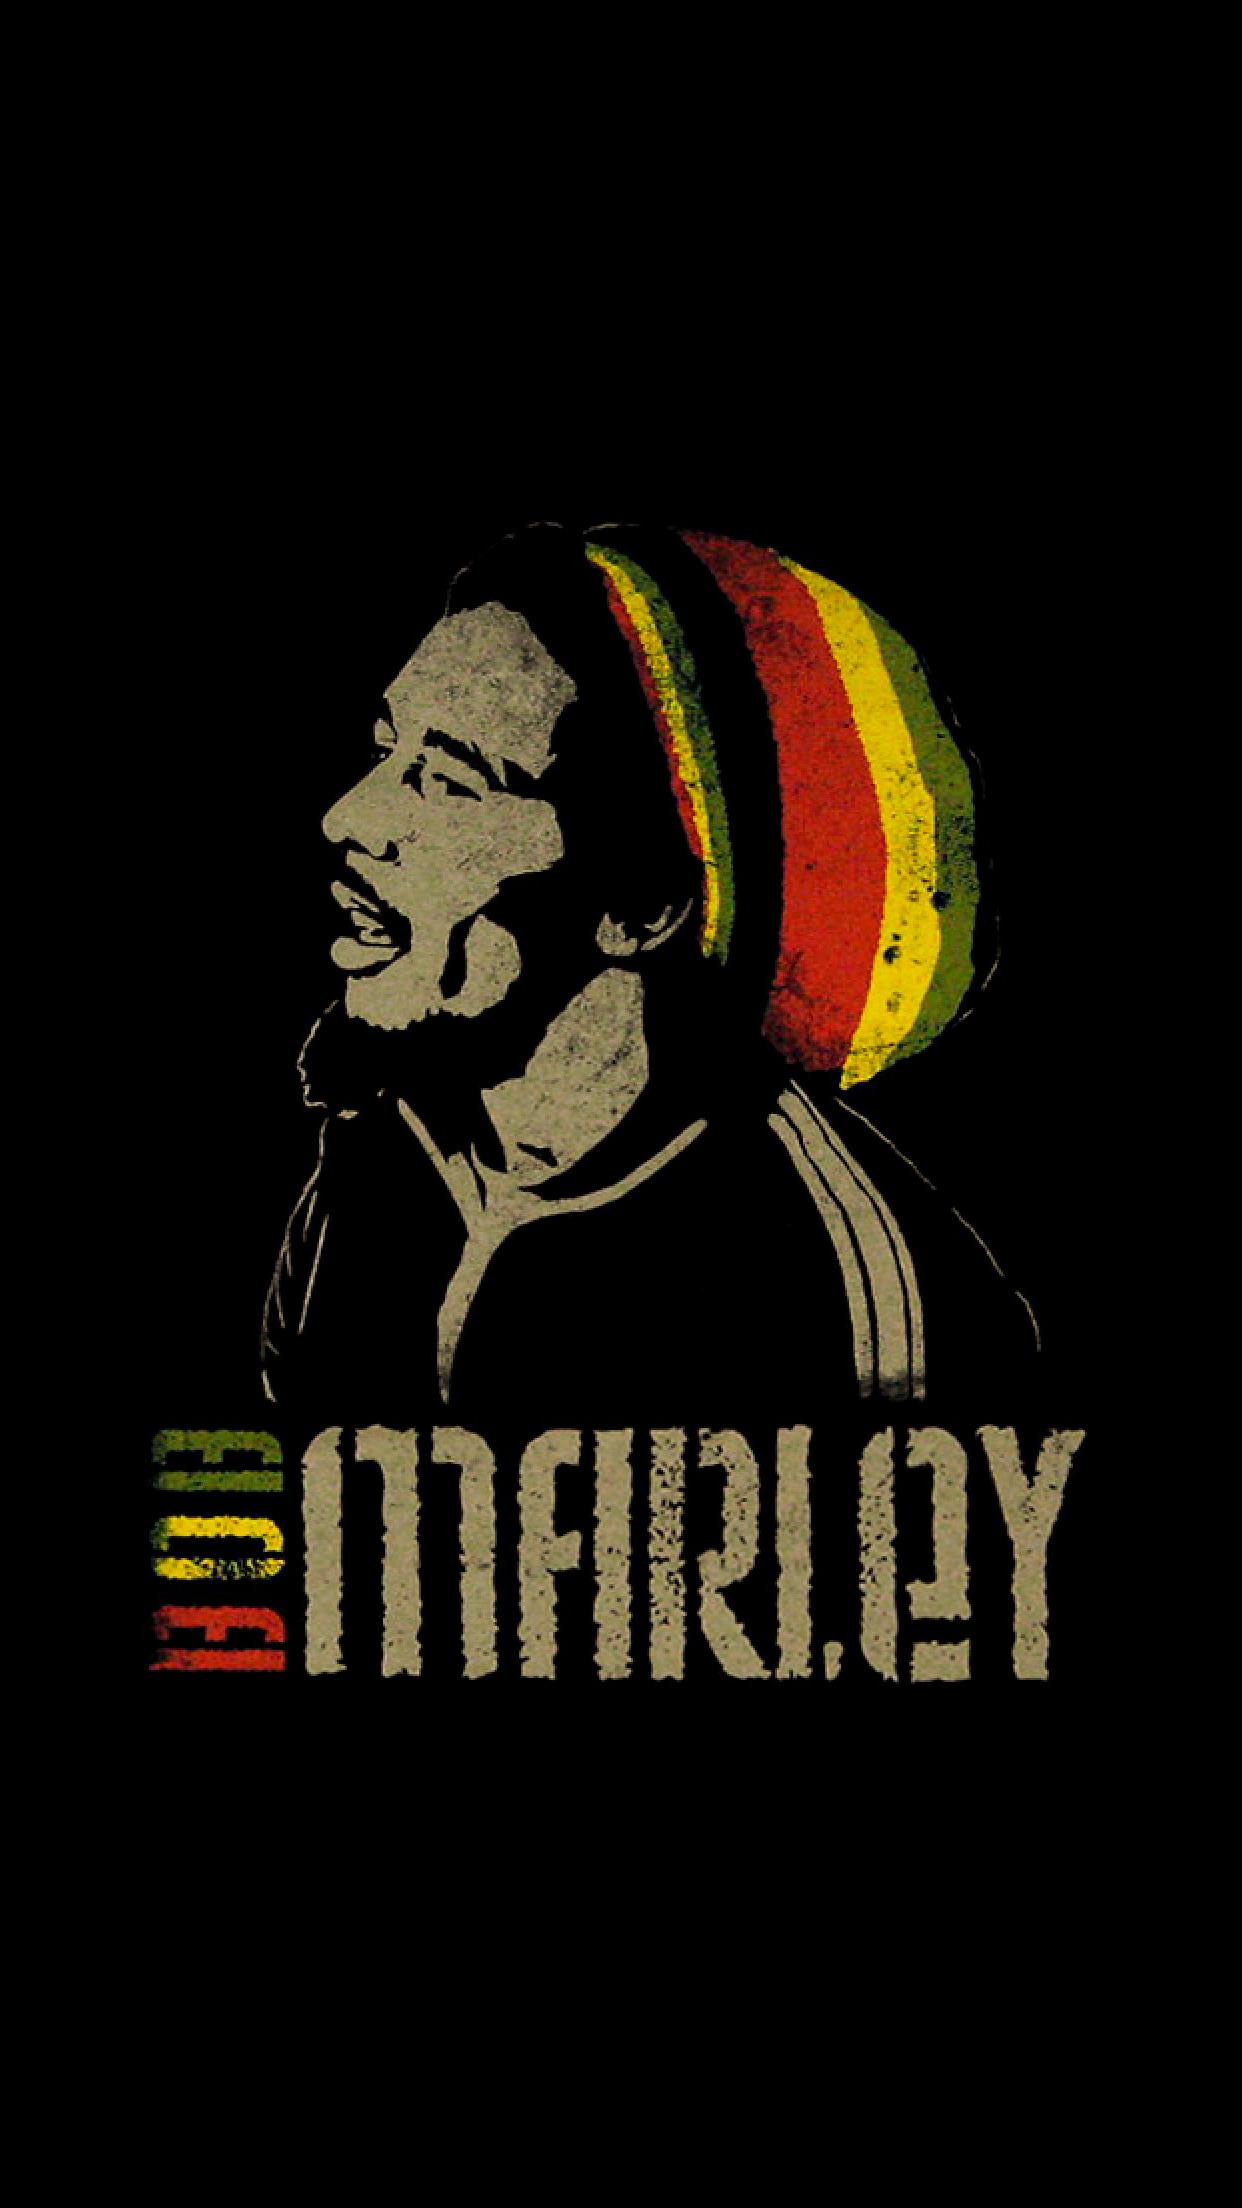 3d Parallax Background Wallpaper Free Download Bob Marley Wallpaper For Iphone X 8 7 6 Free Download